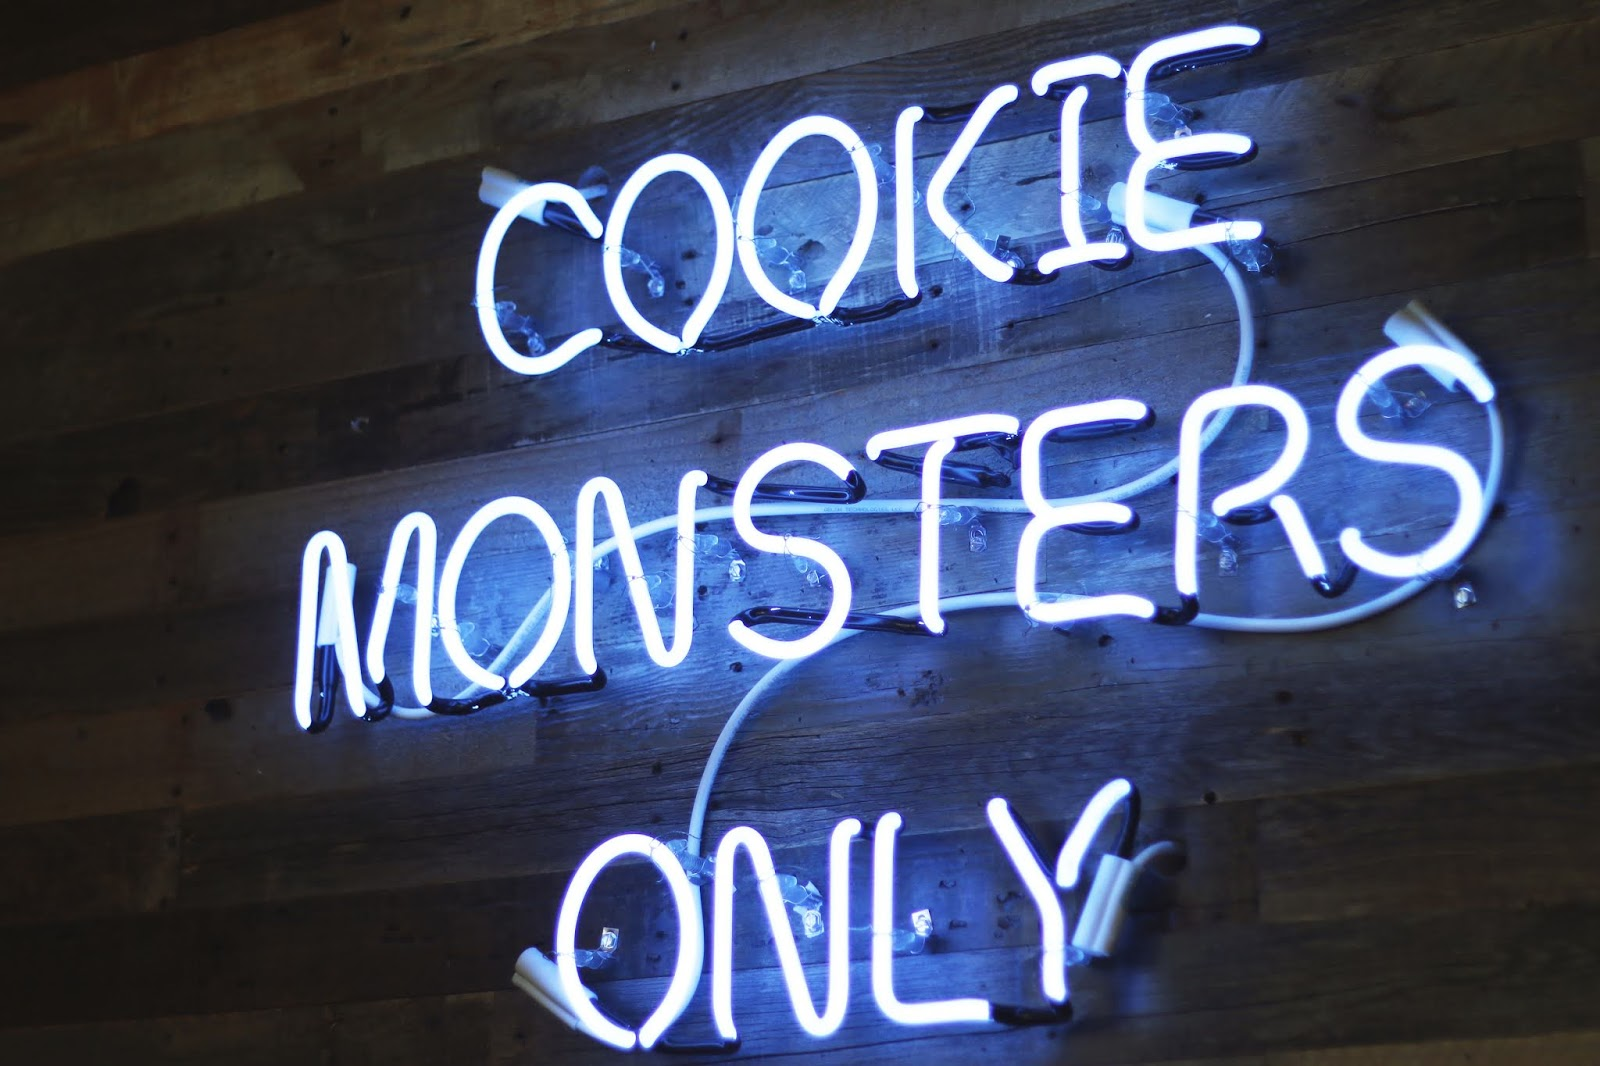 cookie monsters only neon sign, dessert, treats in austin, baked bear austin